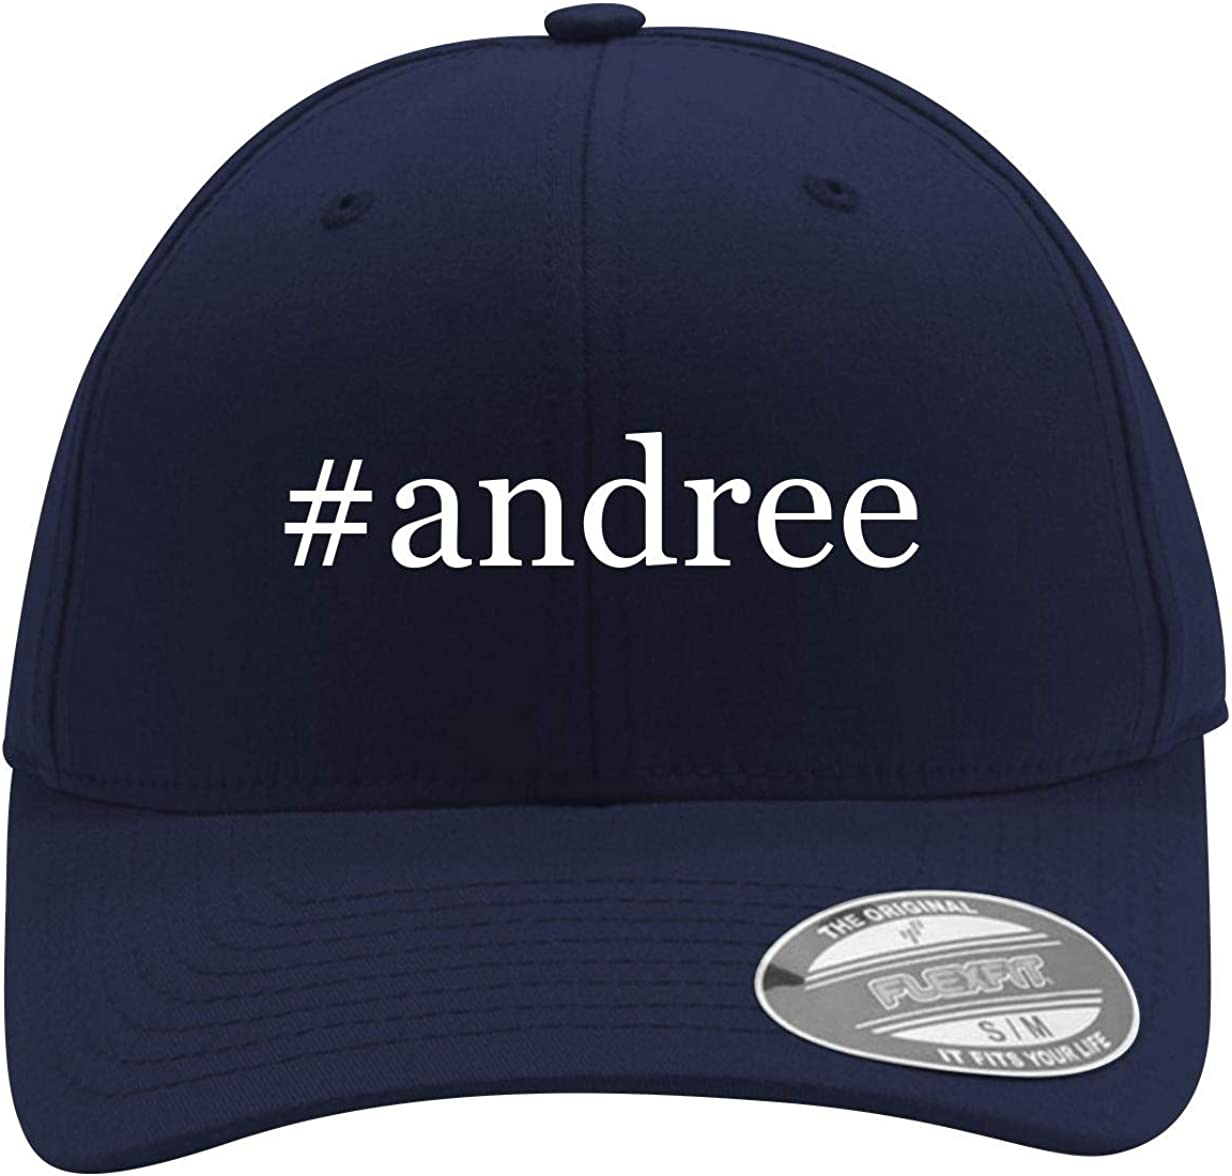 #Andree - Men'S Hashtag Flexfit Baseball Cap Hat